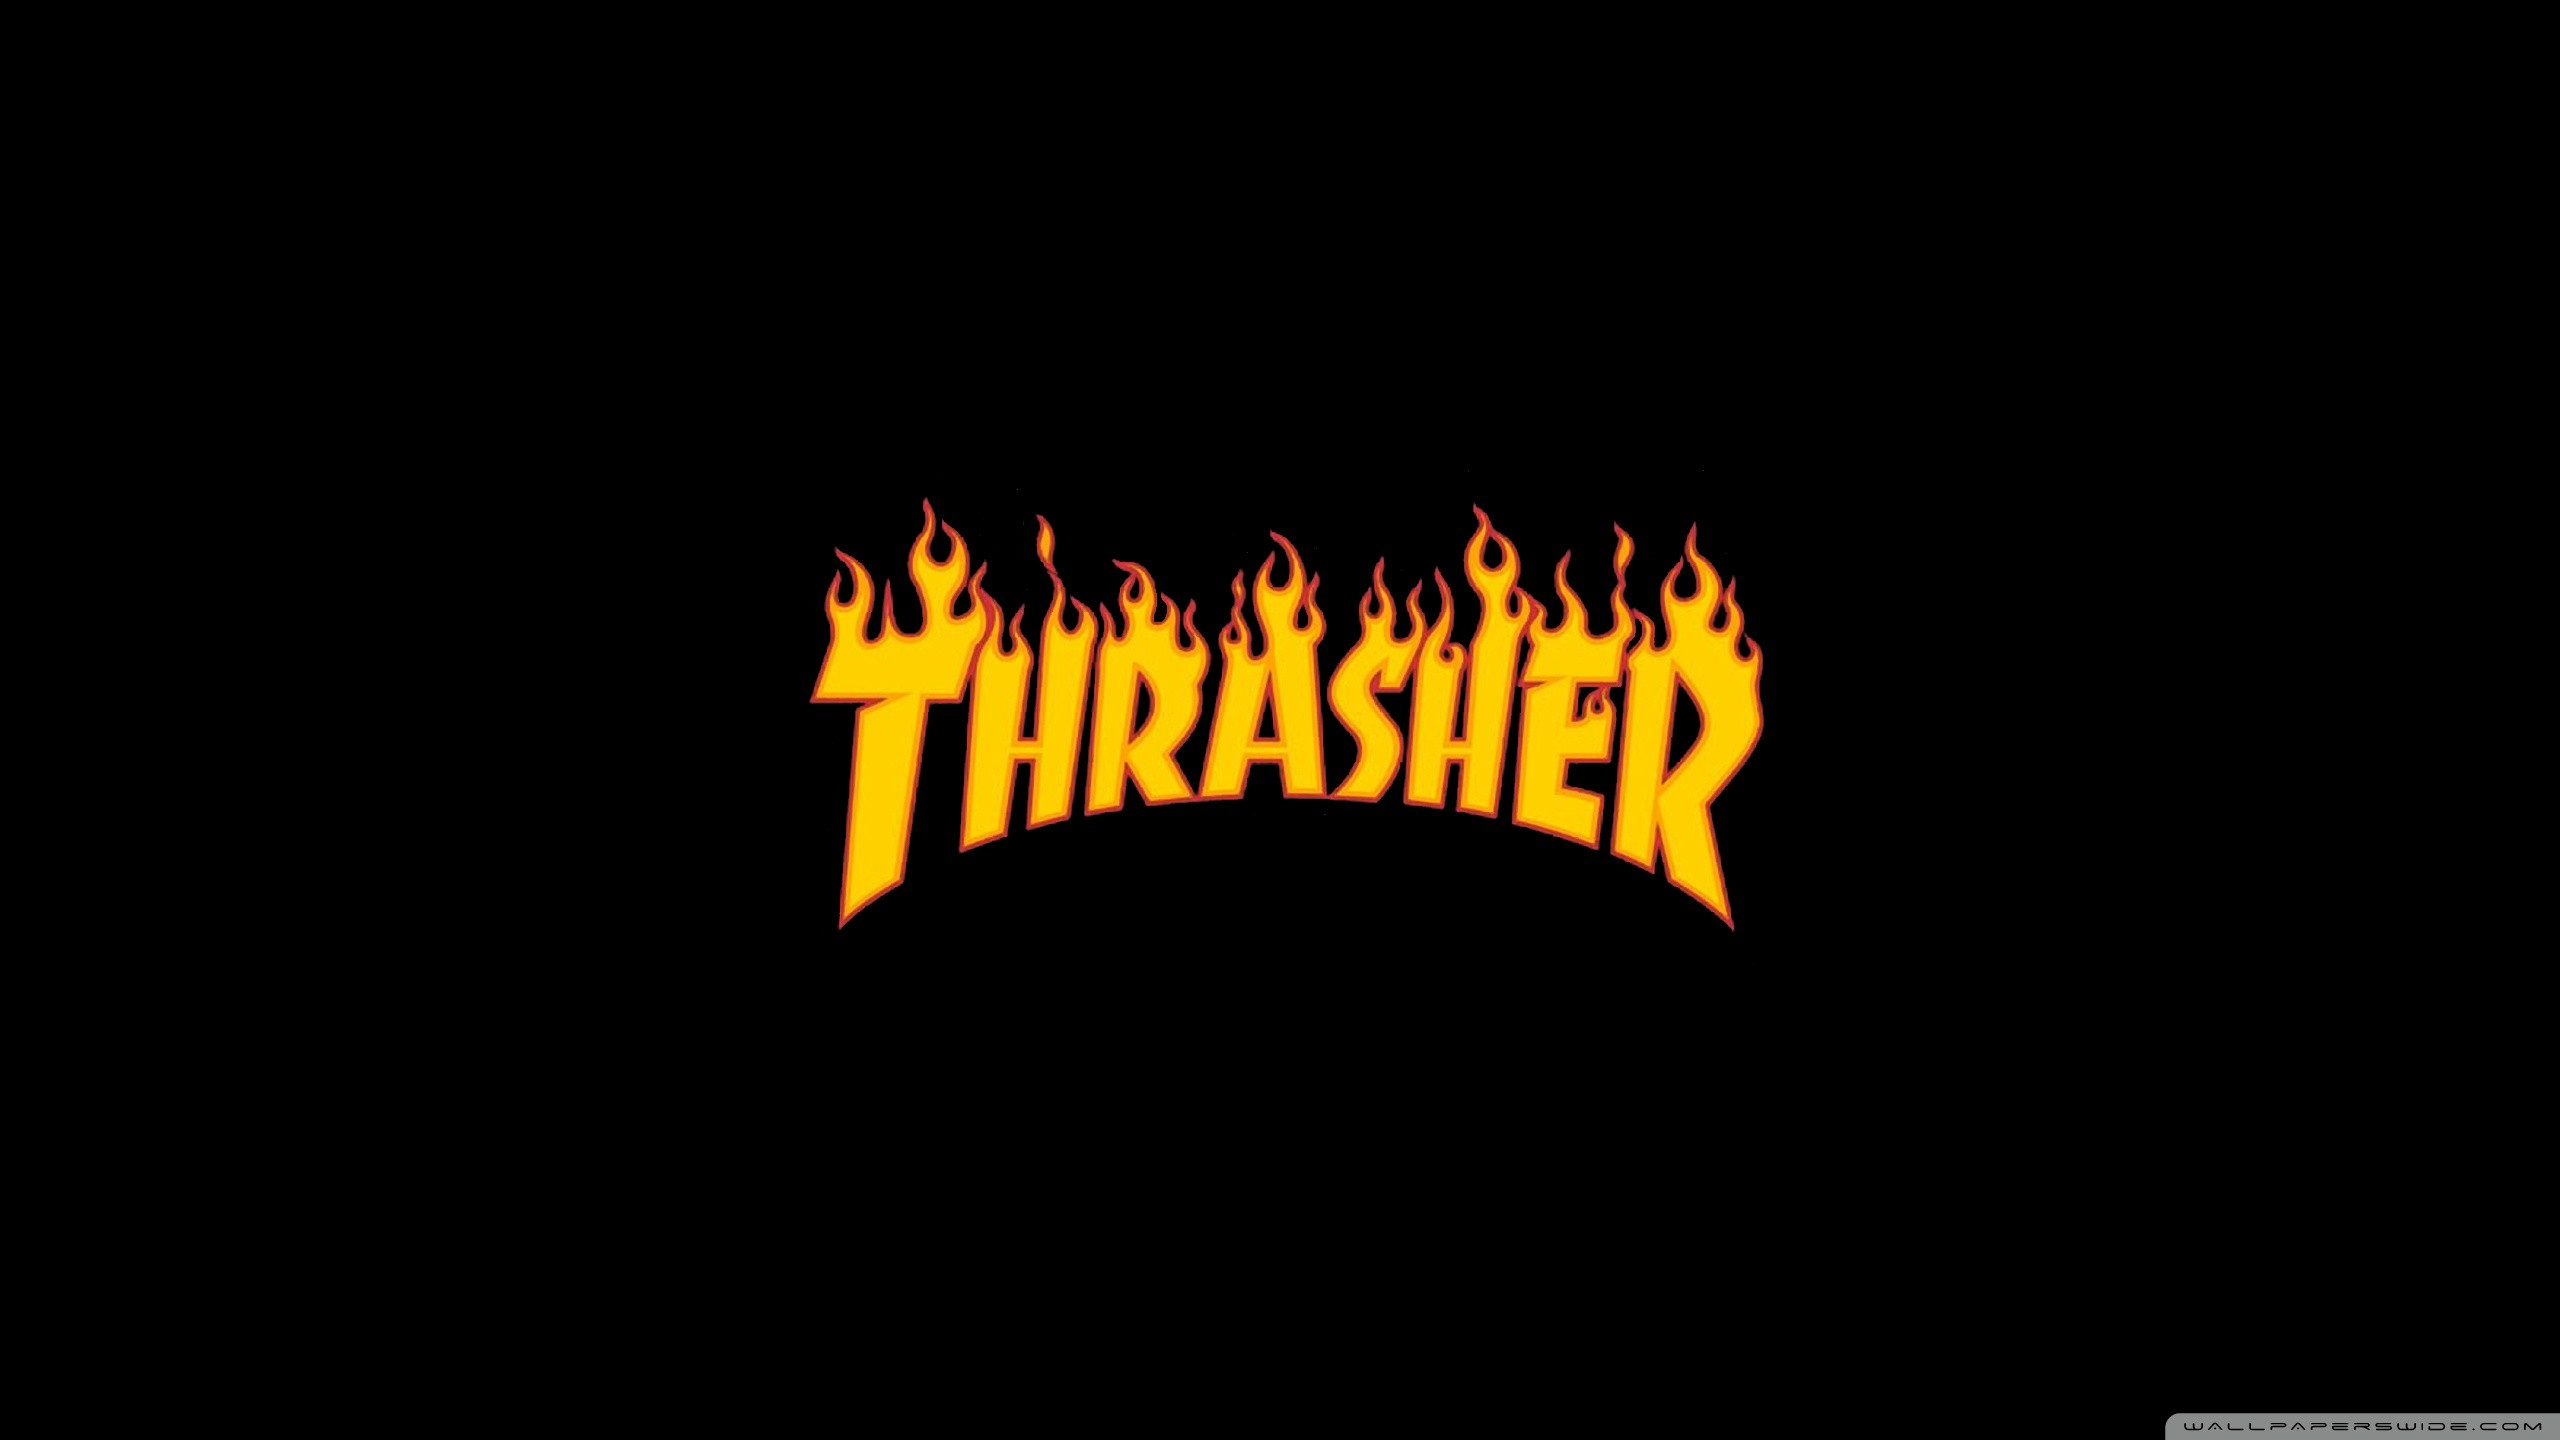 Cute Owl Wallpaper For Mac Thrasher Logo Wallpaper 57 Images